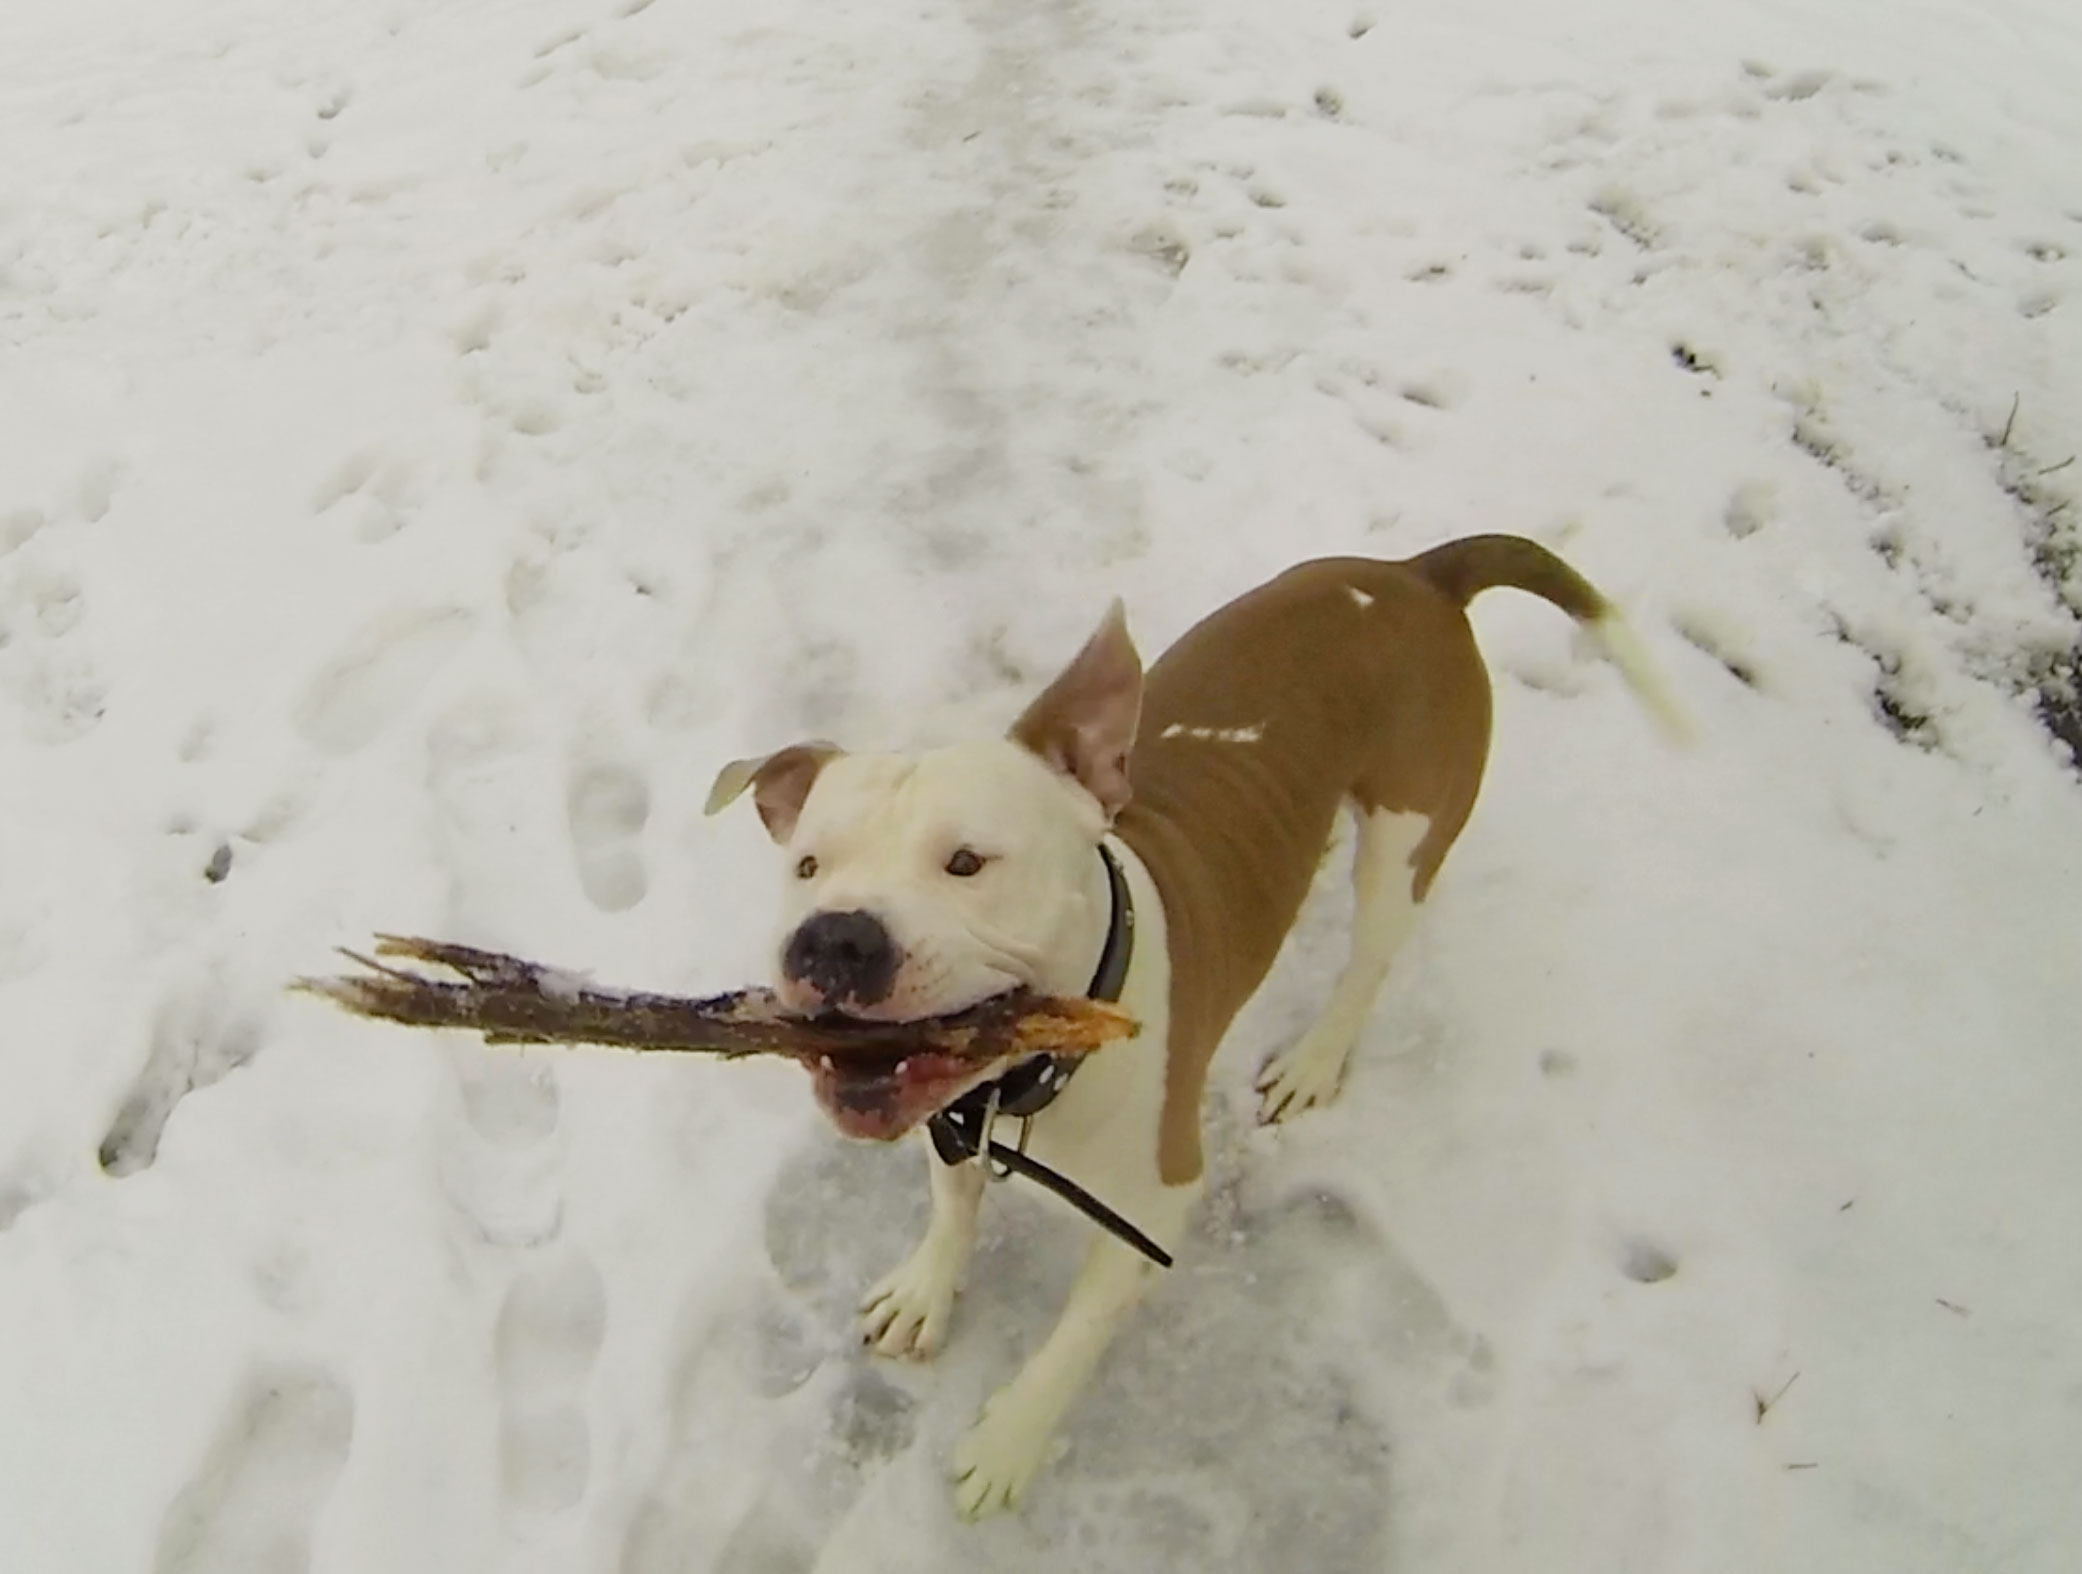 Blog - Ace the amstaff - Screw Them All